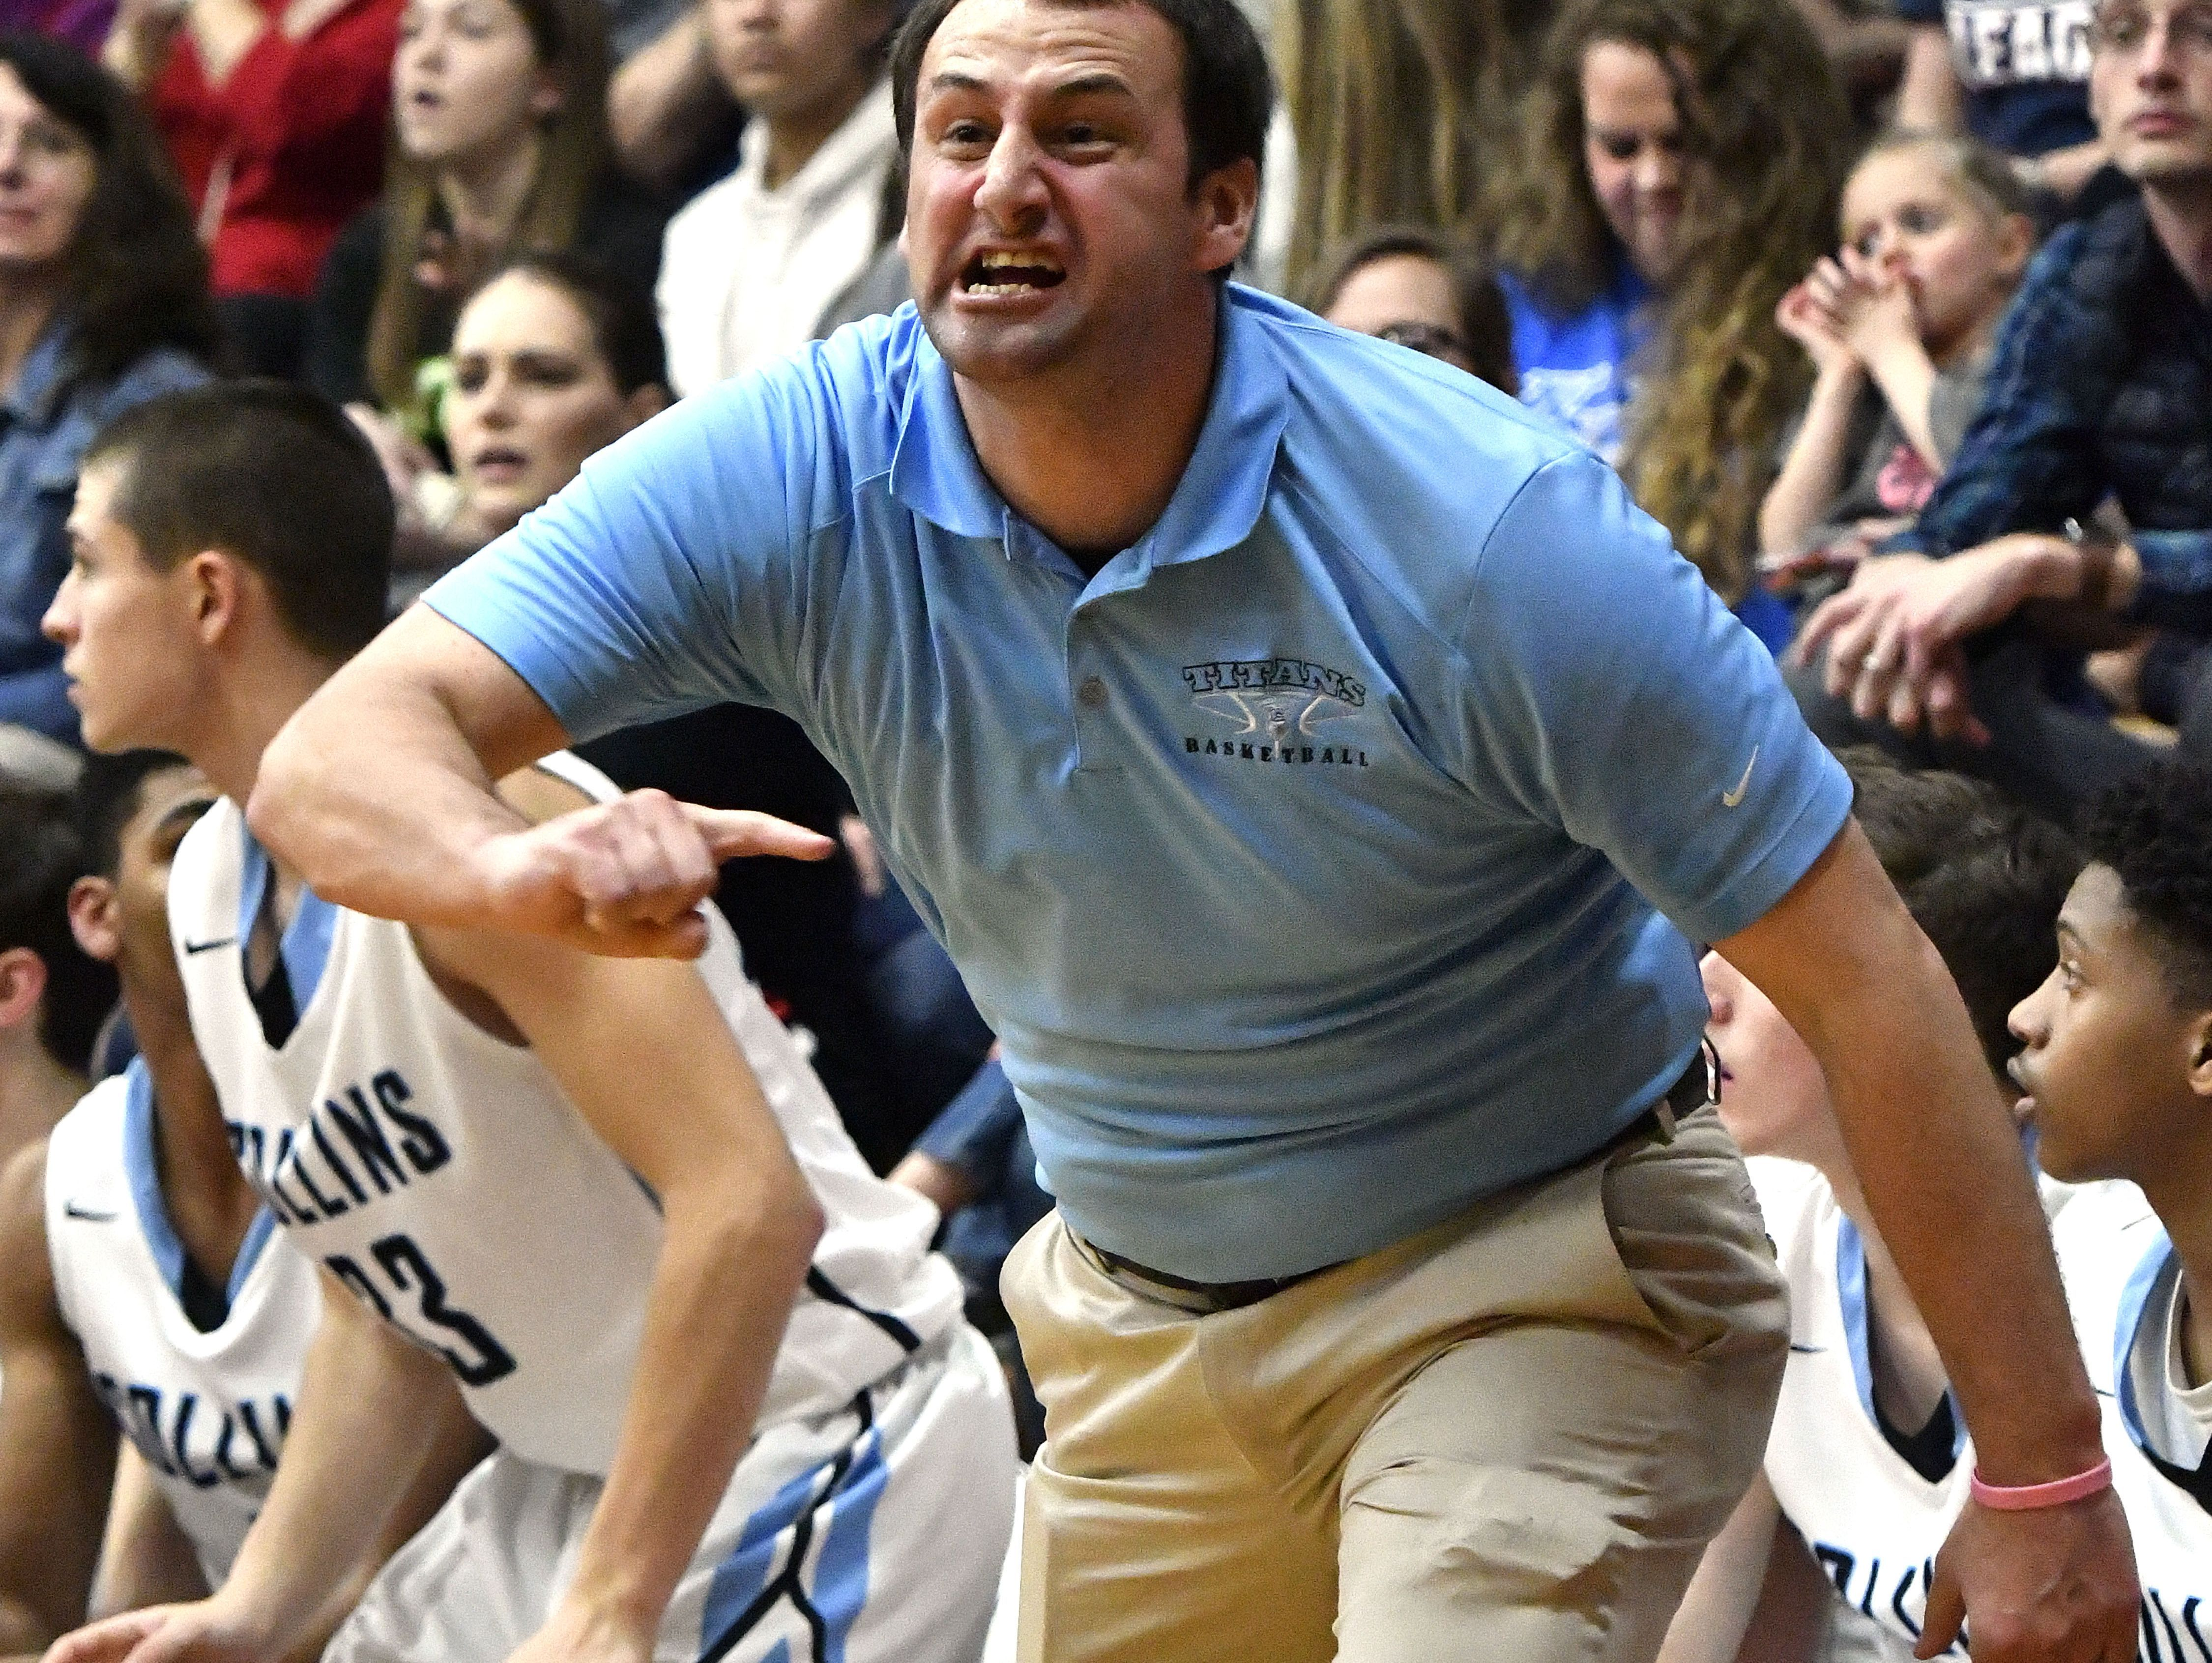 Collins head coach Chris Gaither shouts instructions his team on during their Eighth Region Championship game against Anderson County, Tuesday, Mar. 07, 2017 in Eminence Ky. Collins won 54-53. (Timothy D. Easley/Special to the C-J)